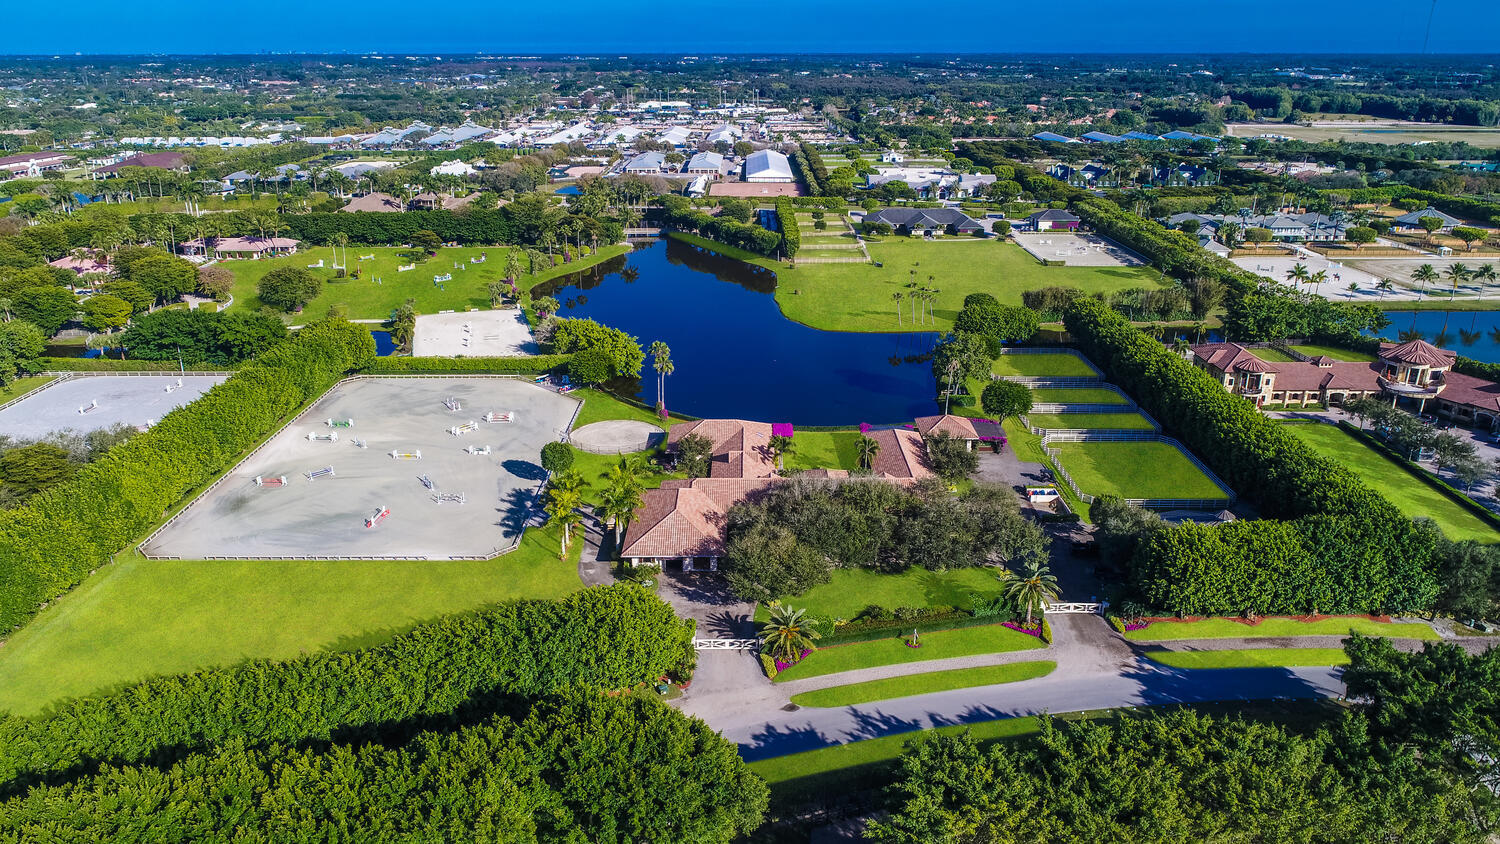 3368 Olde Hampton Drive, Wellington, Florida 33414, ,1.2 BathroomsBathrooms,Single Family,For Sale,Grand Prix Farms,Olde Hampton,1,RX-10688158